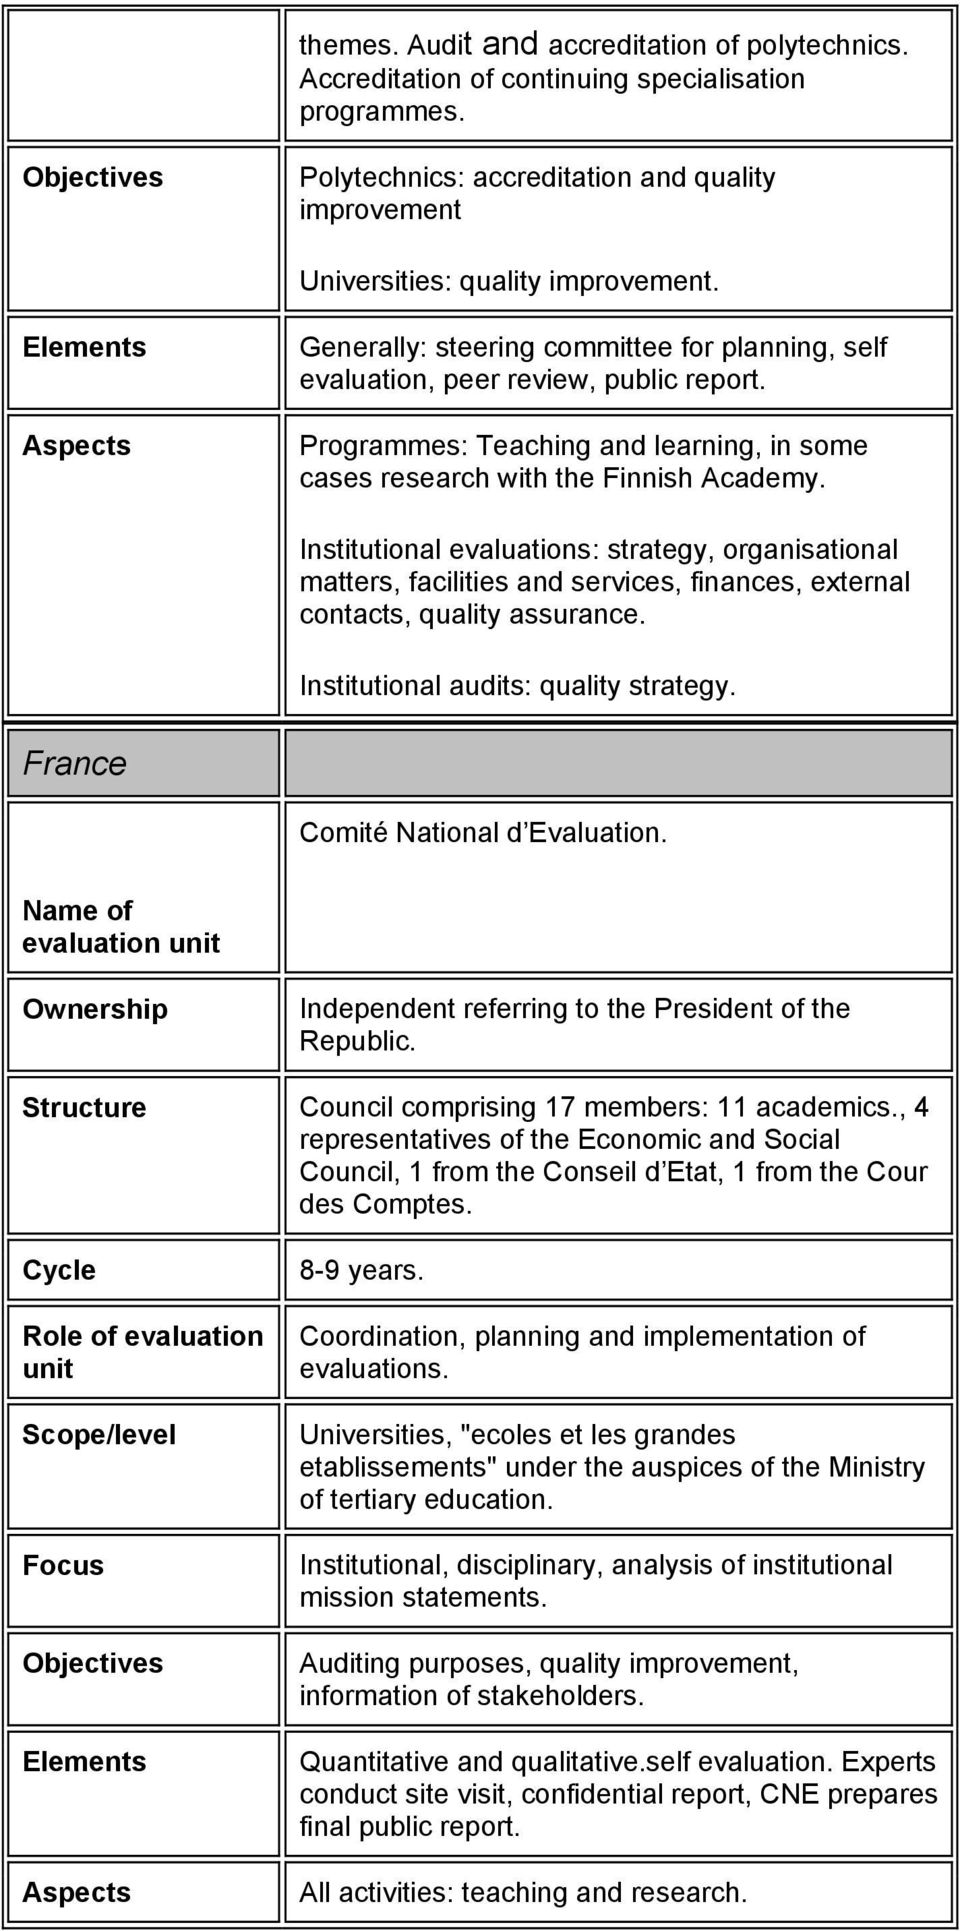 Institutional evaluations: strategy, organisational matters, facilities and services, finances, external contacts, quality assurance. Institutional audits: quality strategy.